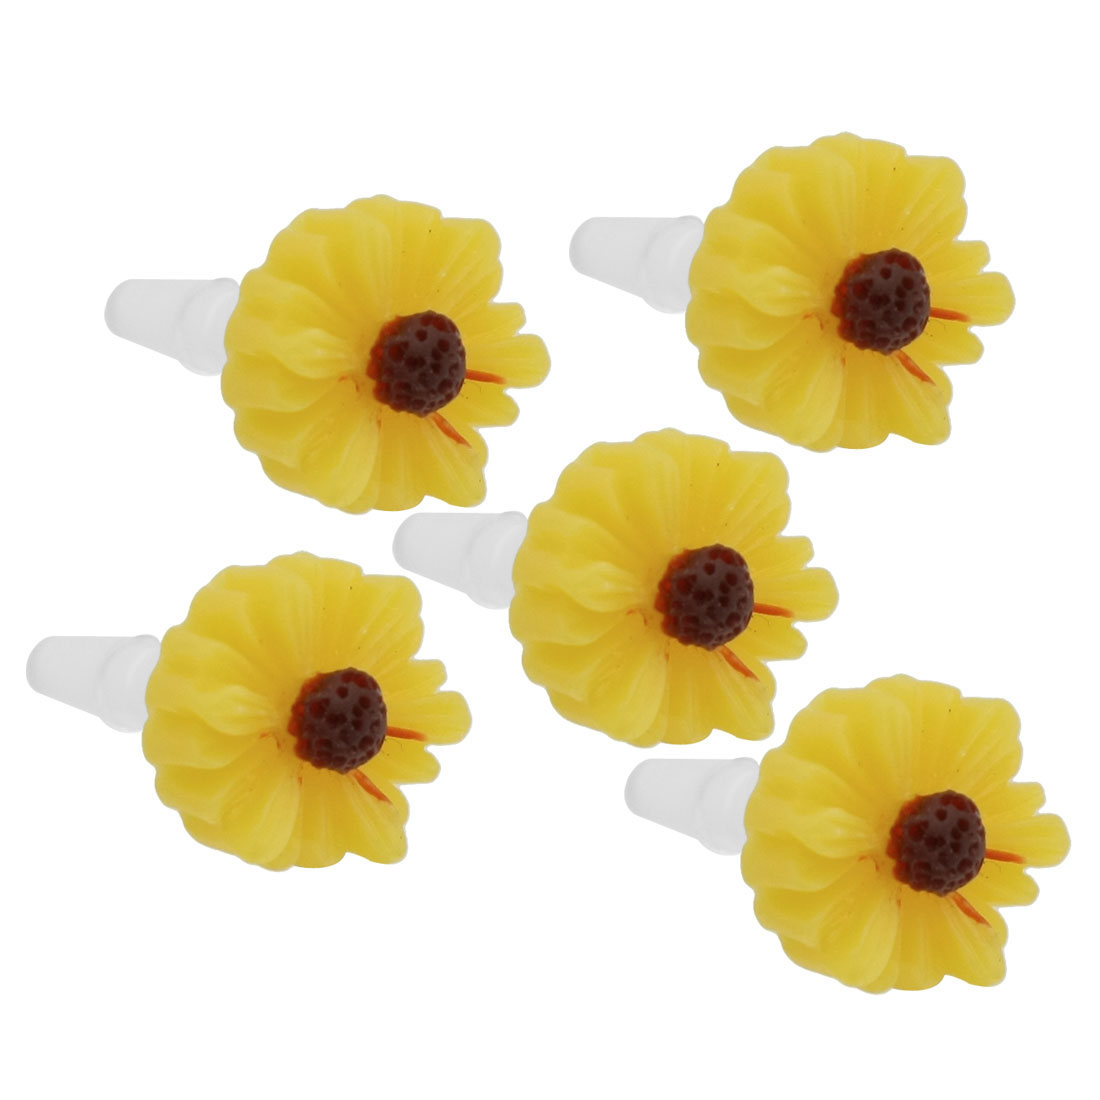 5 Pcs Yellow Daisy 3.5mm Ear Cap Anti Dust Connector Stopper for iPhone 5G 3G 4S